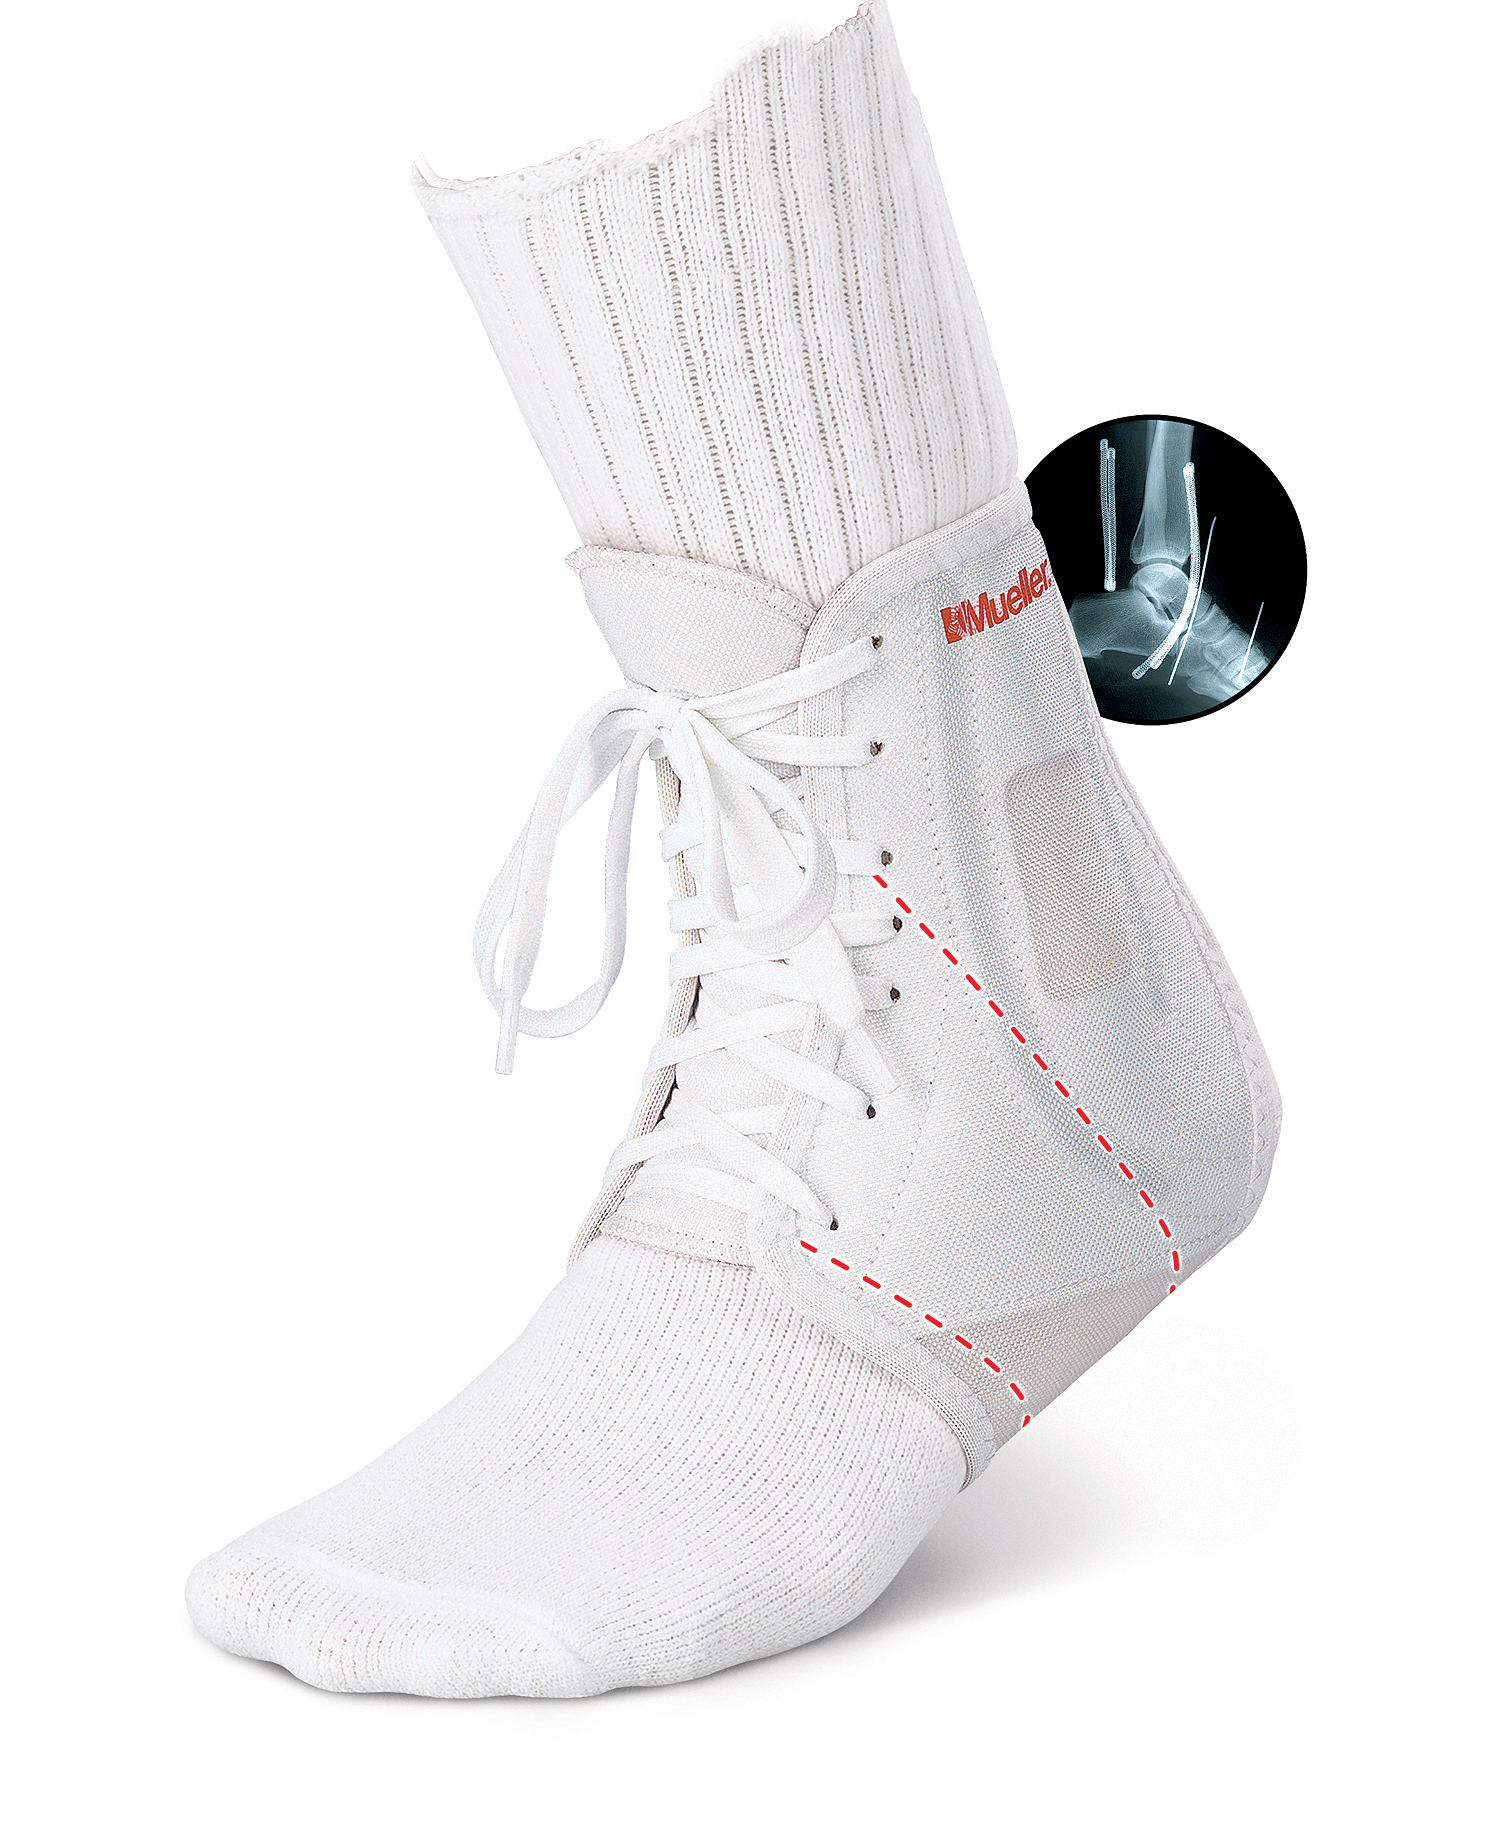 pro-level-atf-ankle-brace-white-xl-212xl-74676212159-lr.jpg